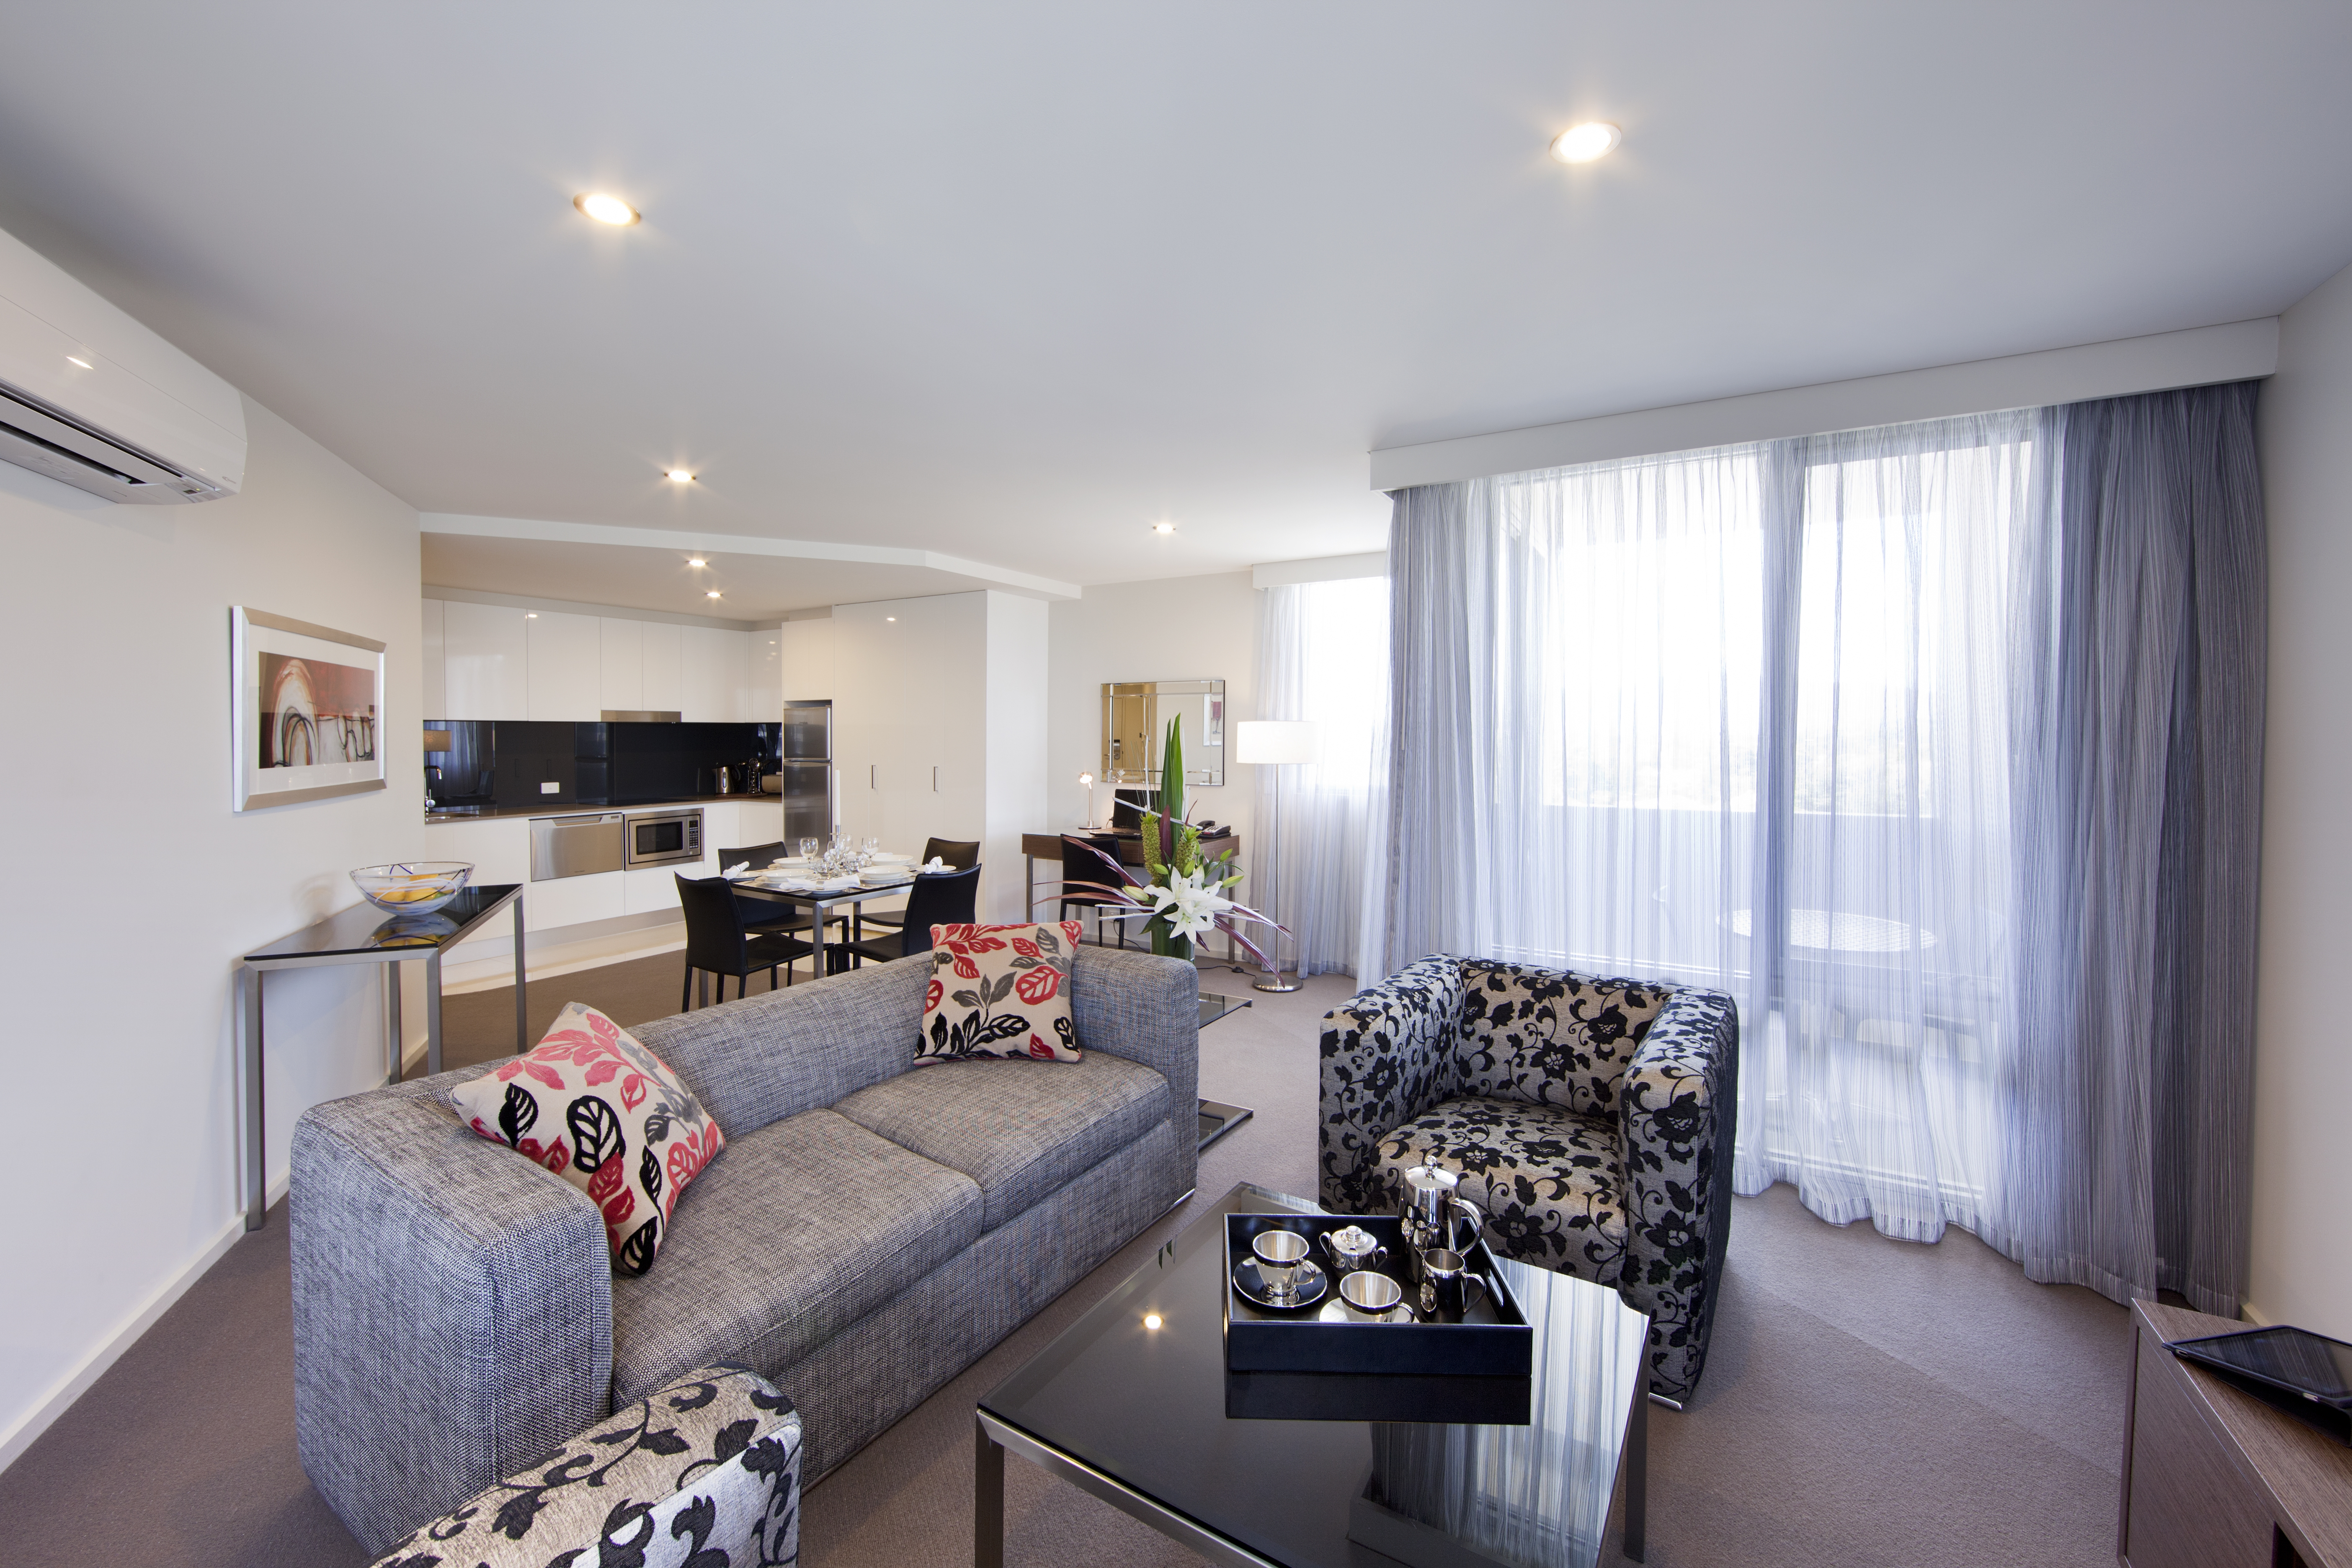 Aria Hotel Canberra - Accommodation Perth